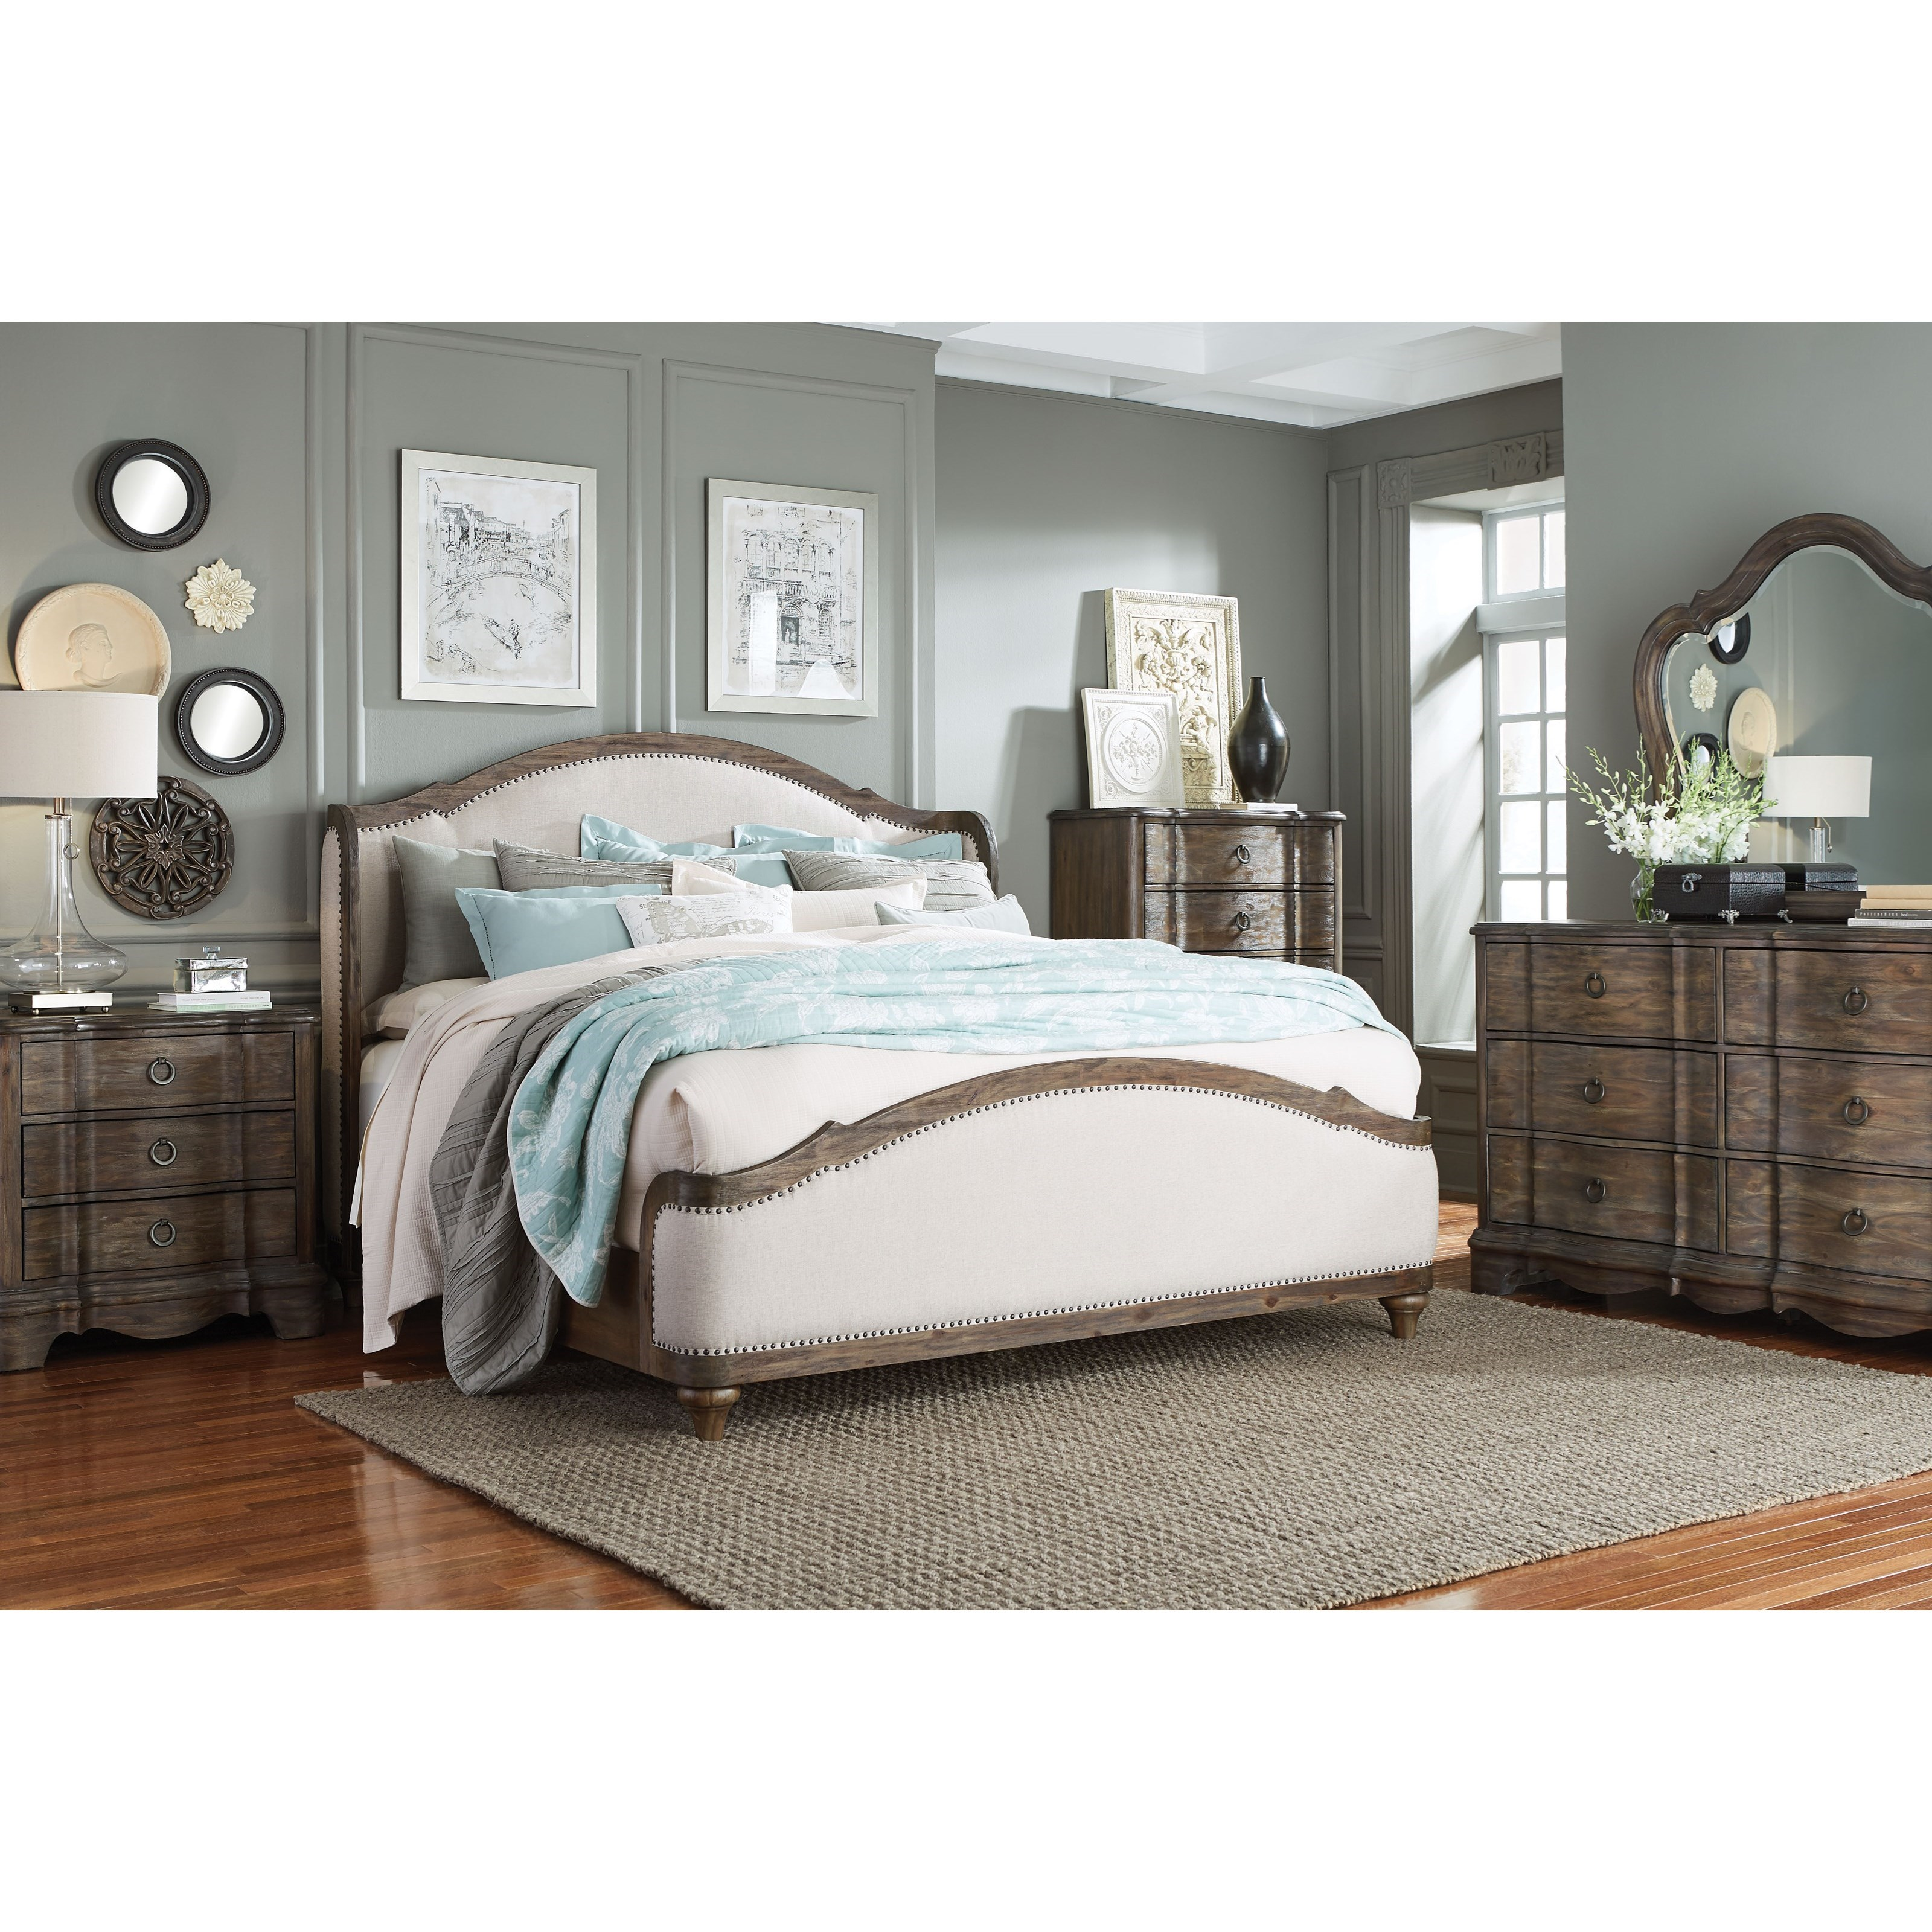 Standard Furniture Parliament King Bedroom Group Dunk Bright Furniture Bedroom Groups